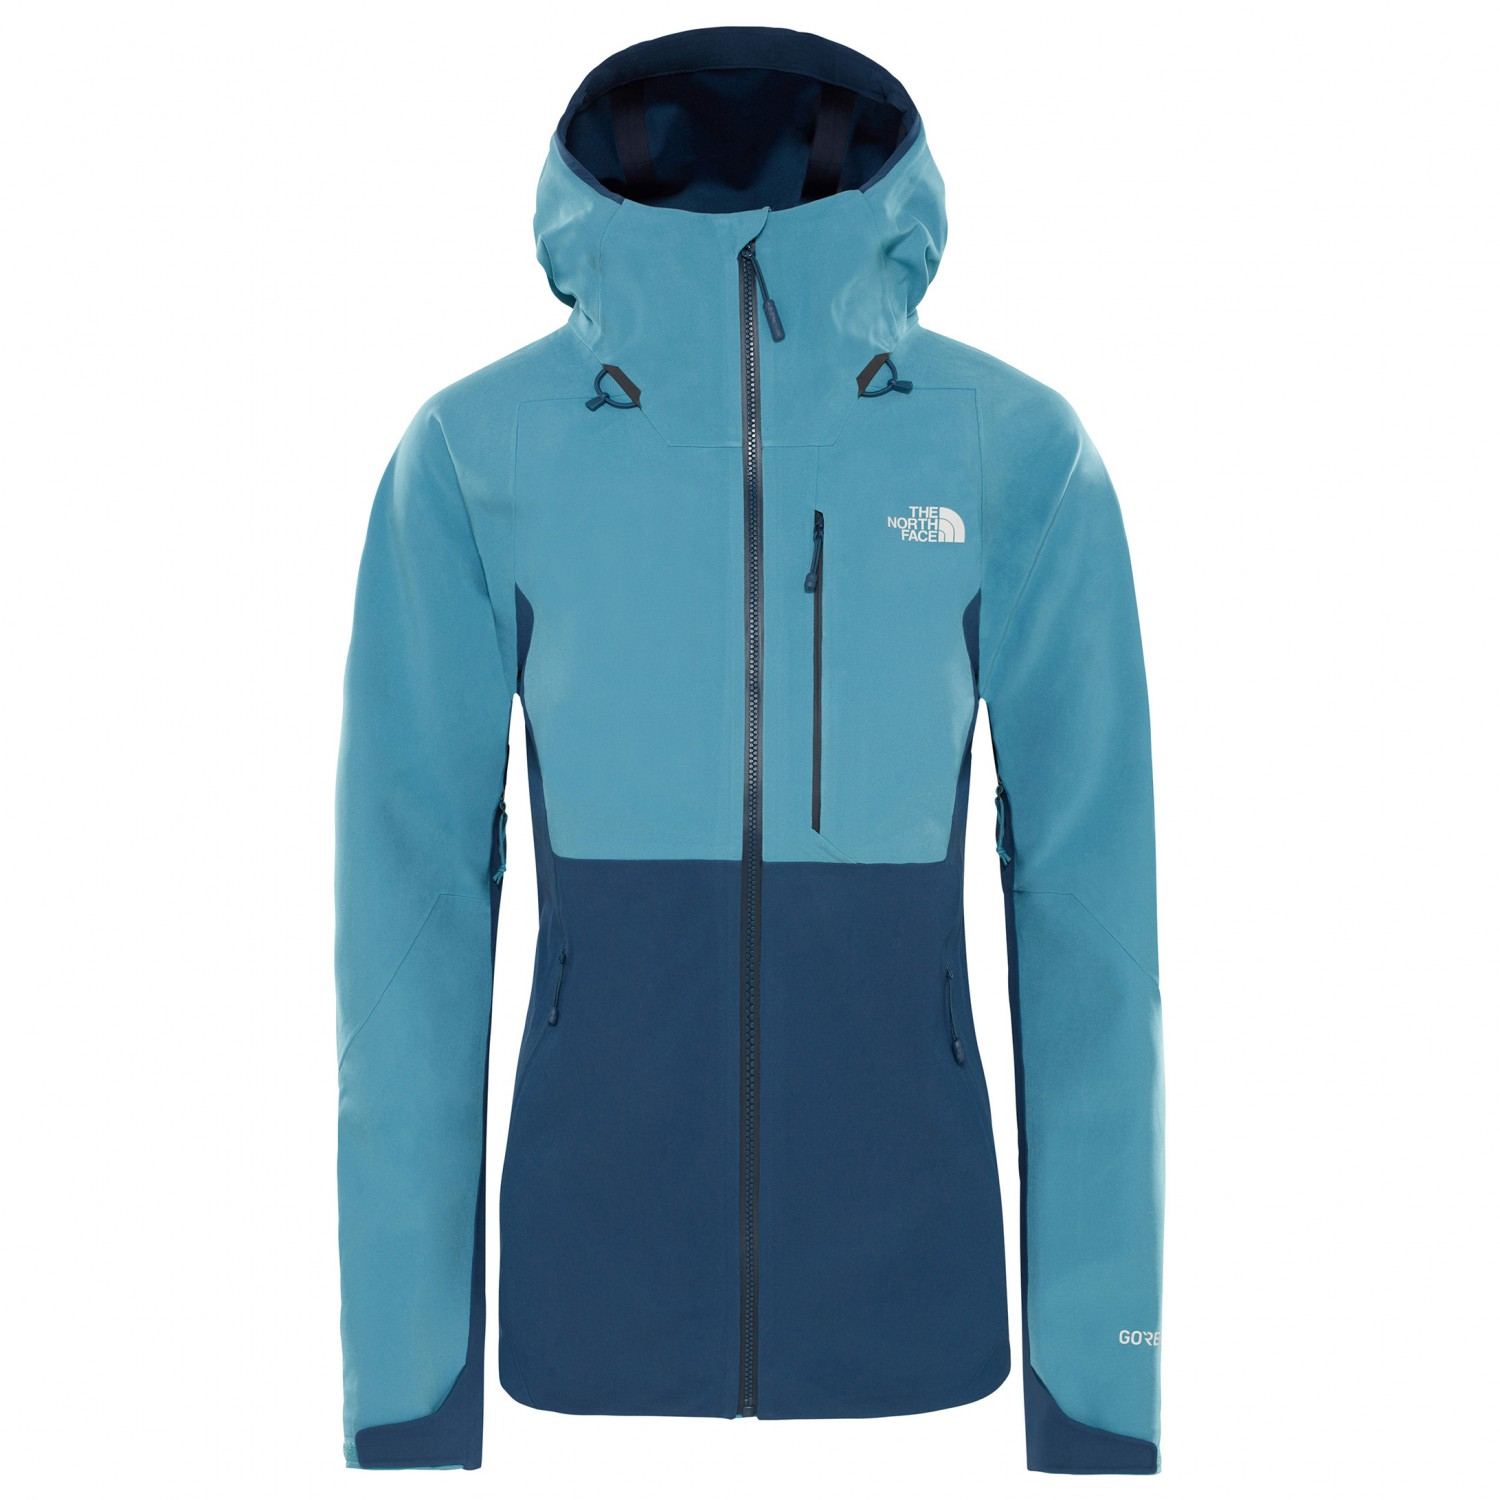 The North Face Apex Flex GTX 2.0 Jacket Regnjacka Dam köp